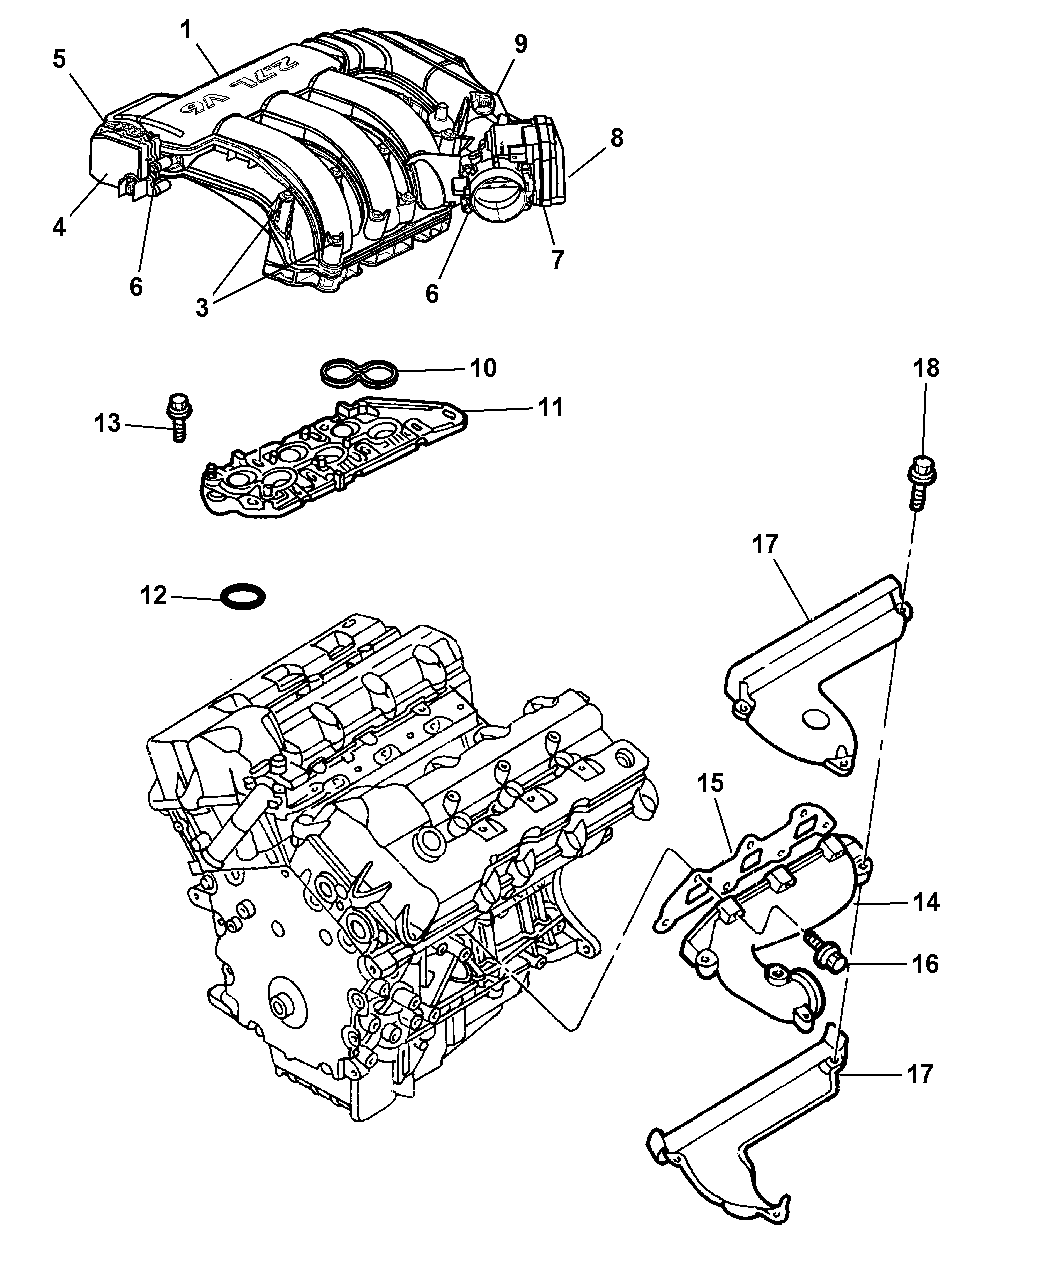 2006 Chrysler Sebring Engine Diagram Wiring Library